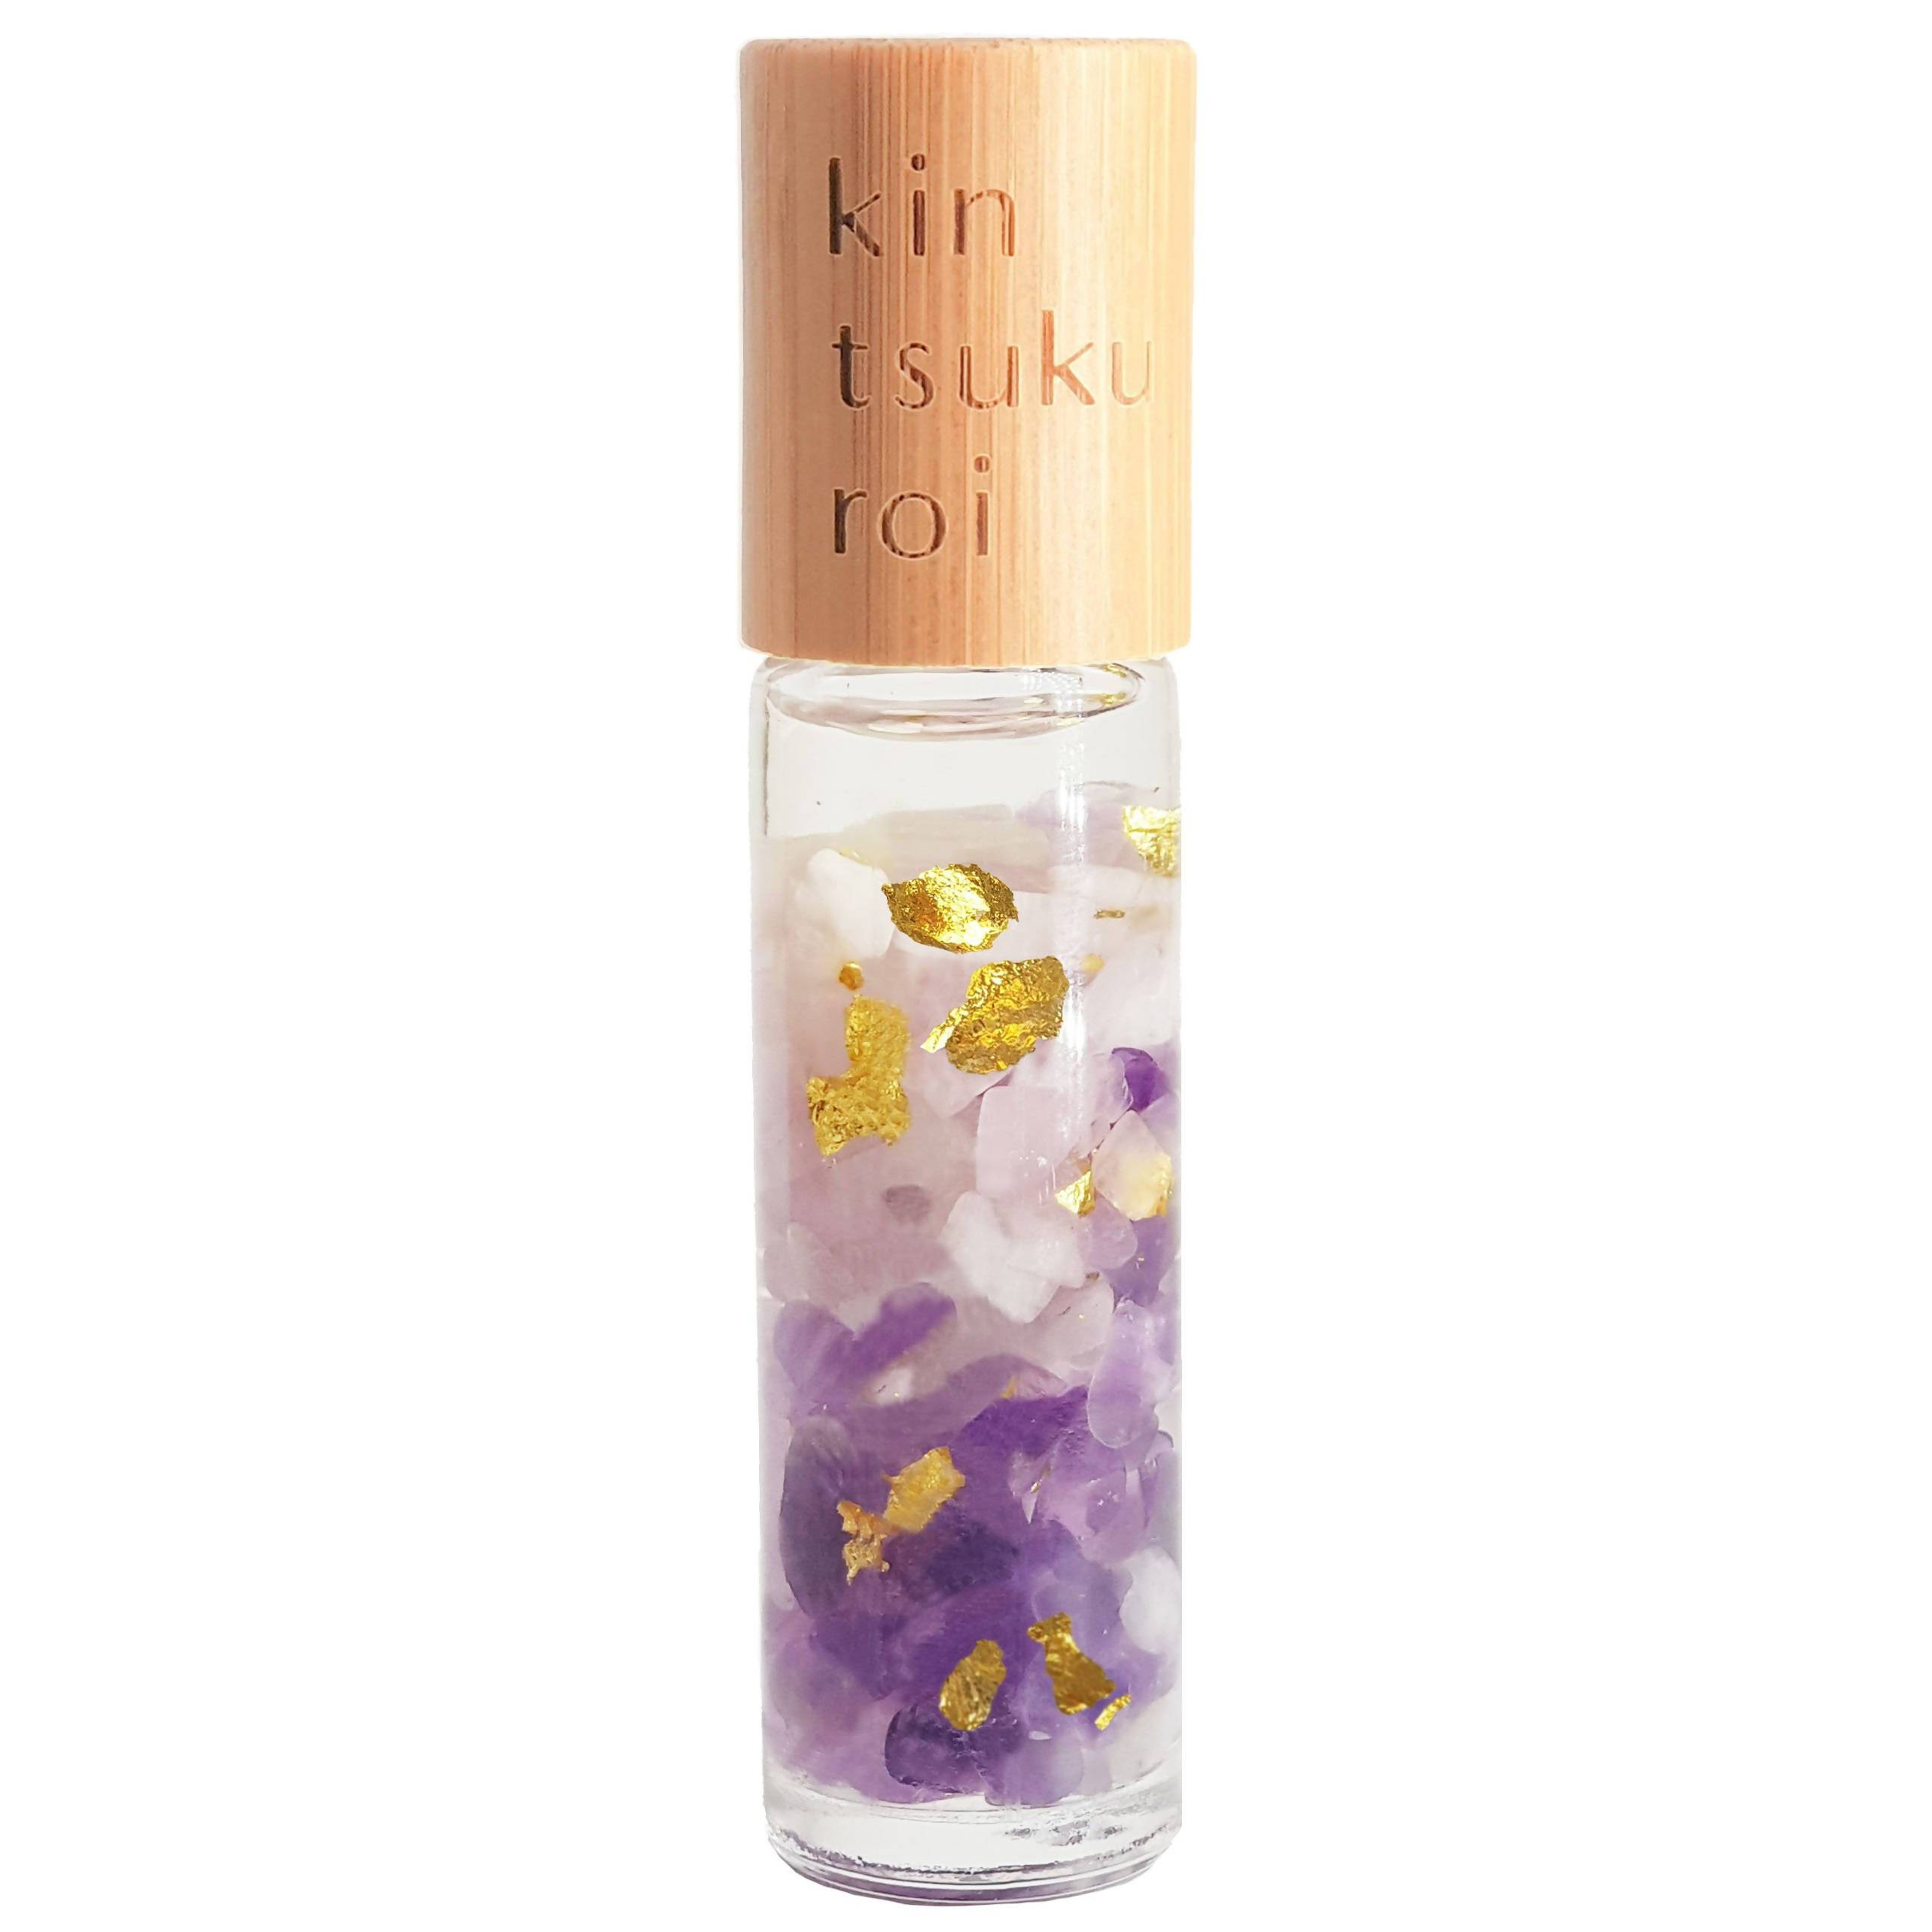 Solitude | Reflection Crystal Oil - Essential Oil Roll-Ons - Kintsukuroi Studio - Naiise